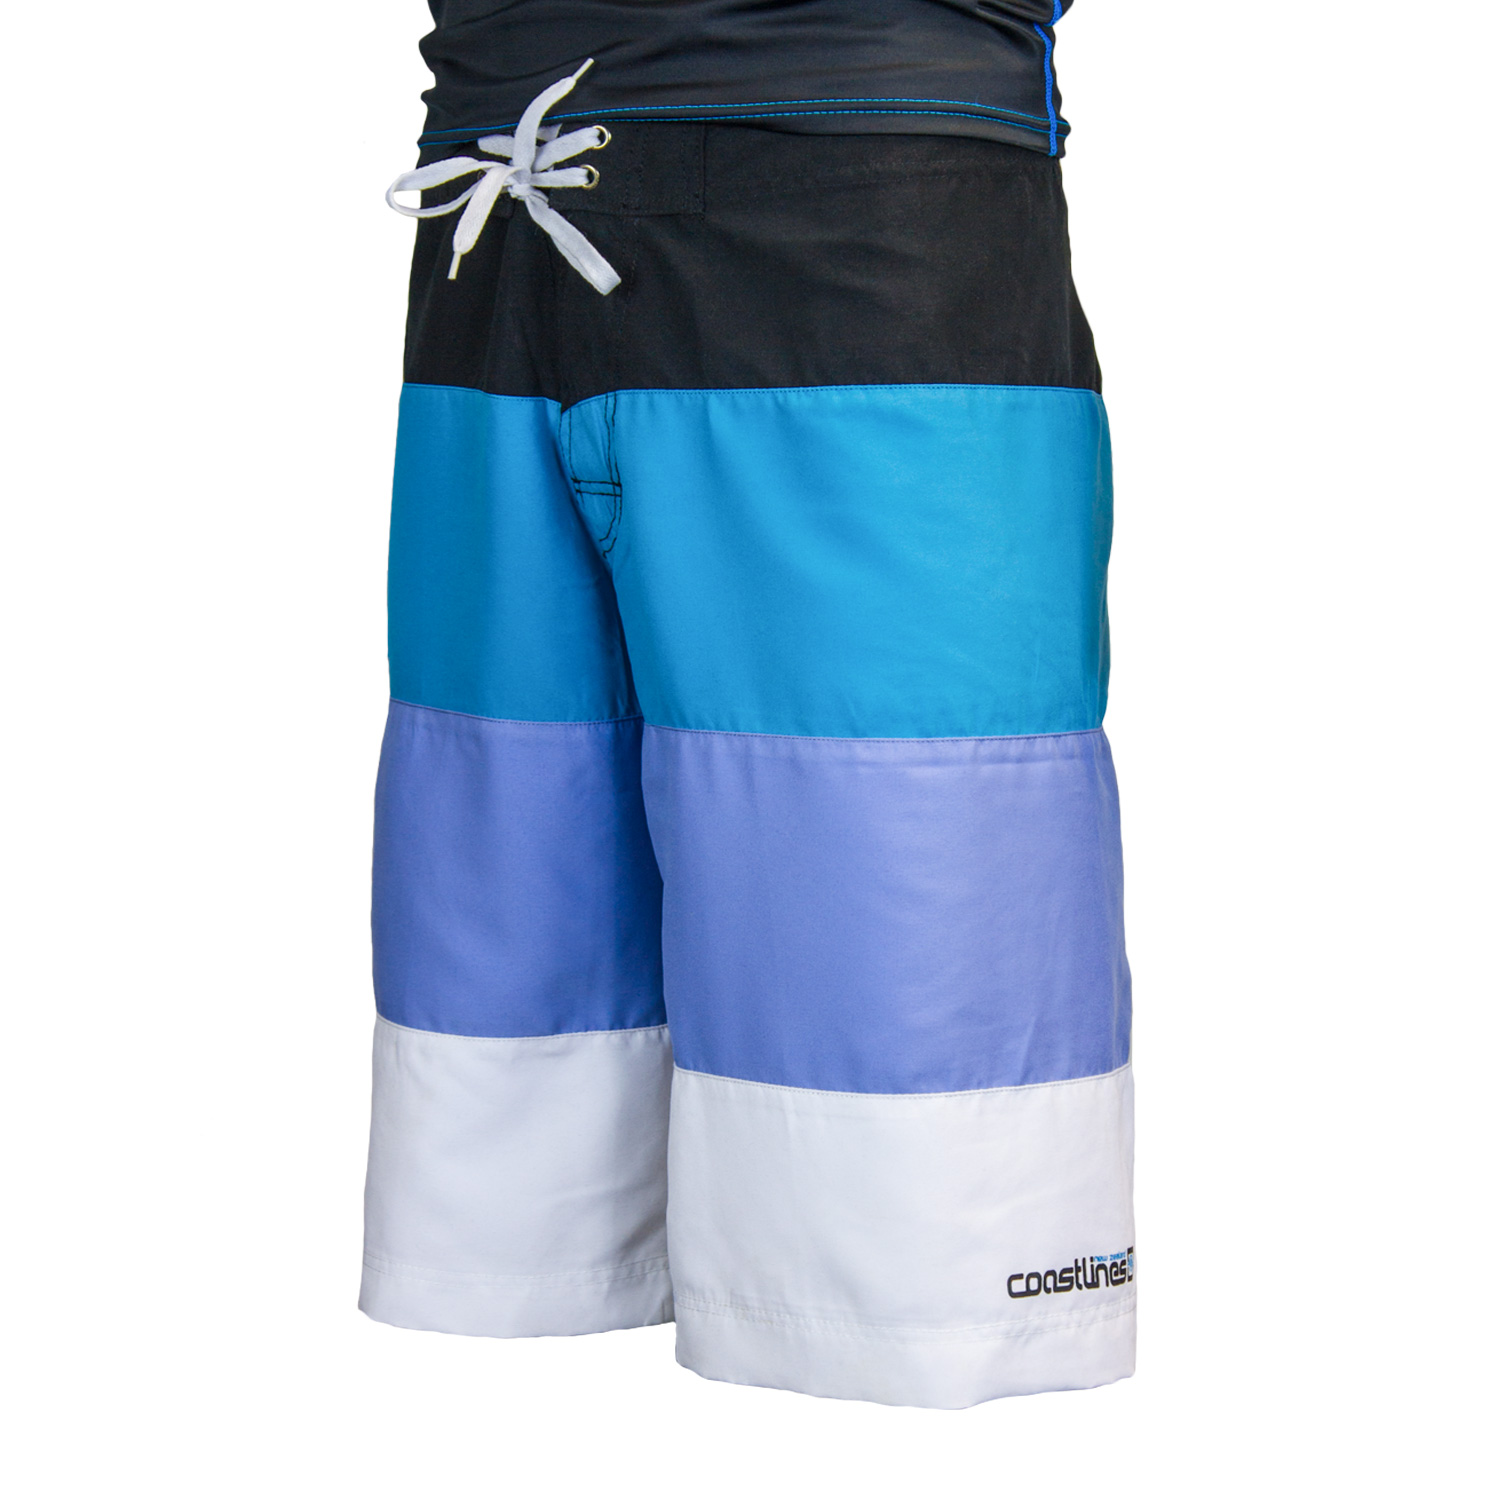 a05a62c57f Mens Swimming Surf Boardshorts Swim Trunks Board Shorts Beach Wear ...